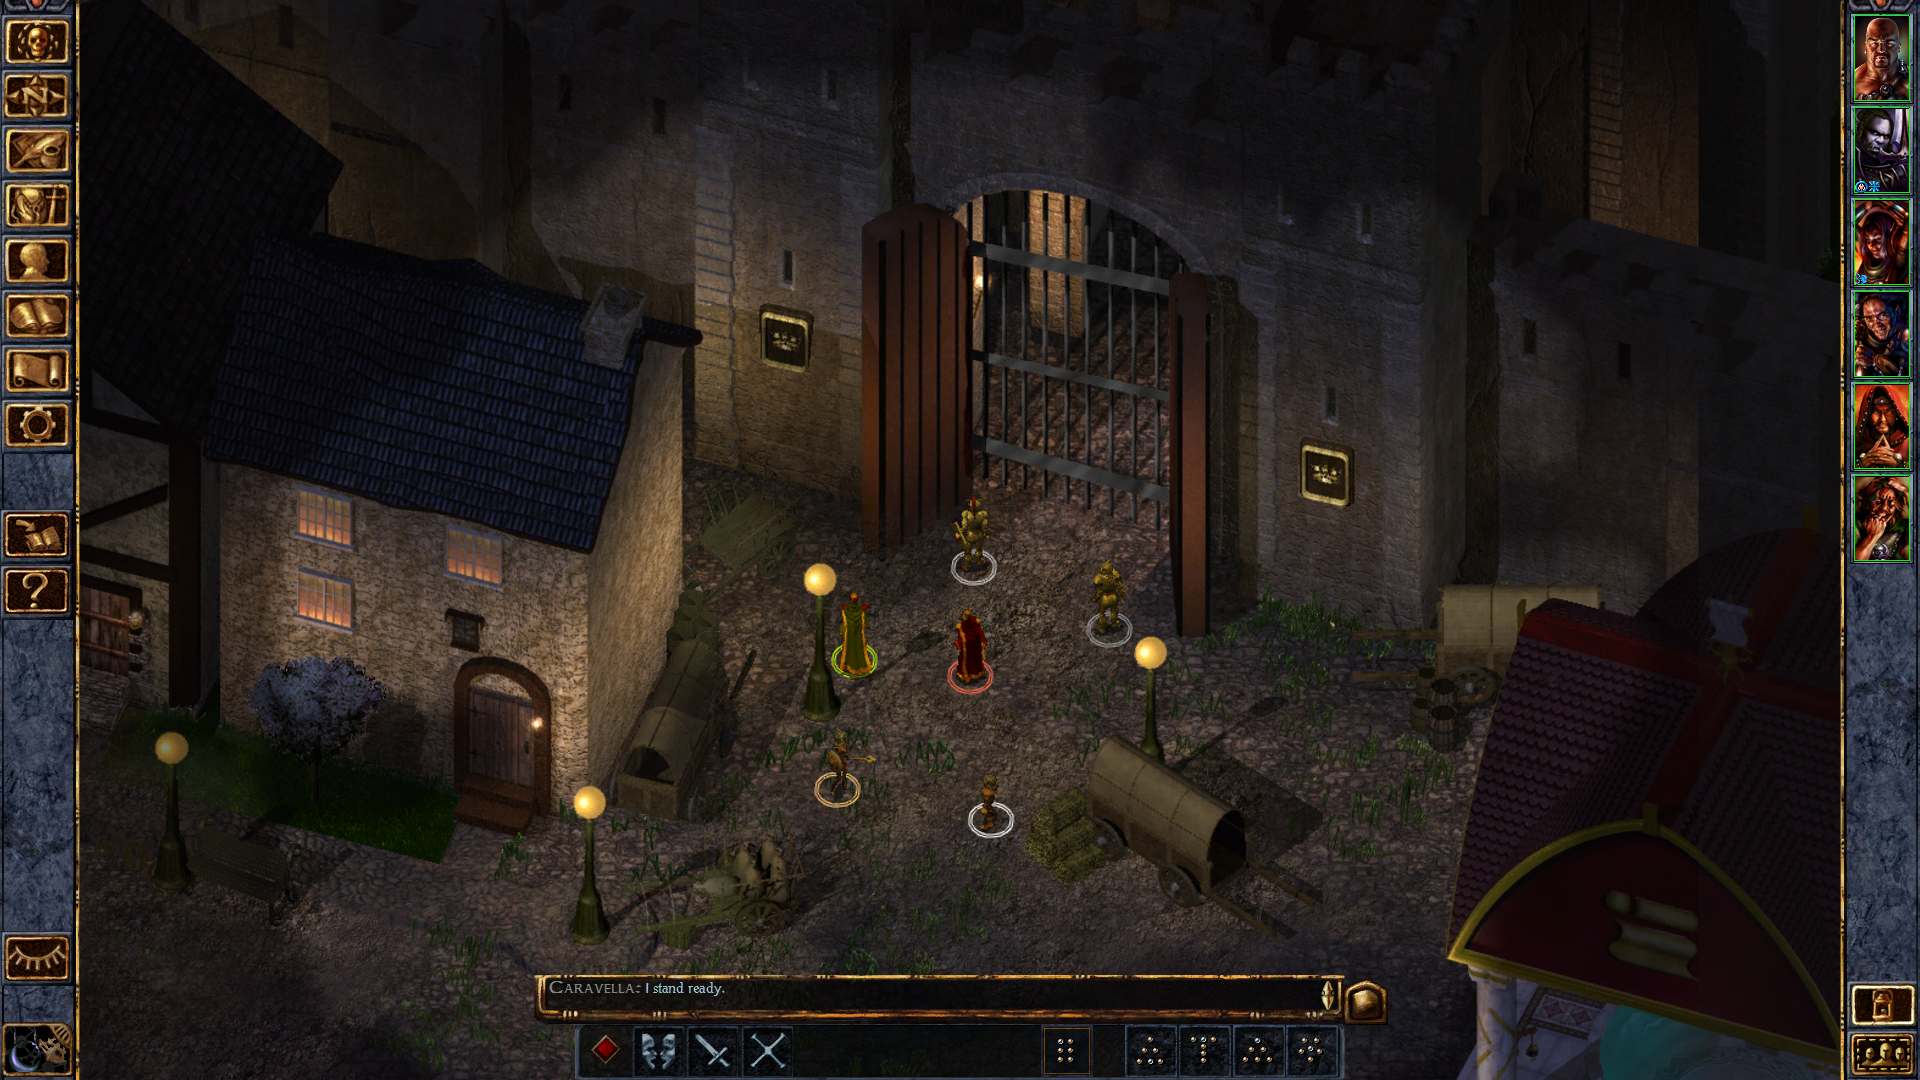 Can I make fantasy RPG games with Unreal Engine? - Quora